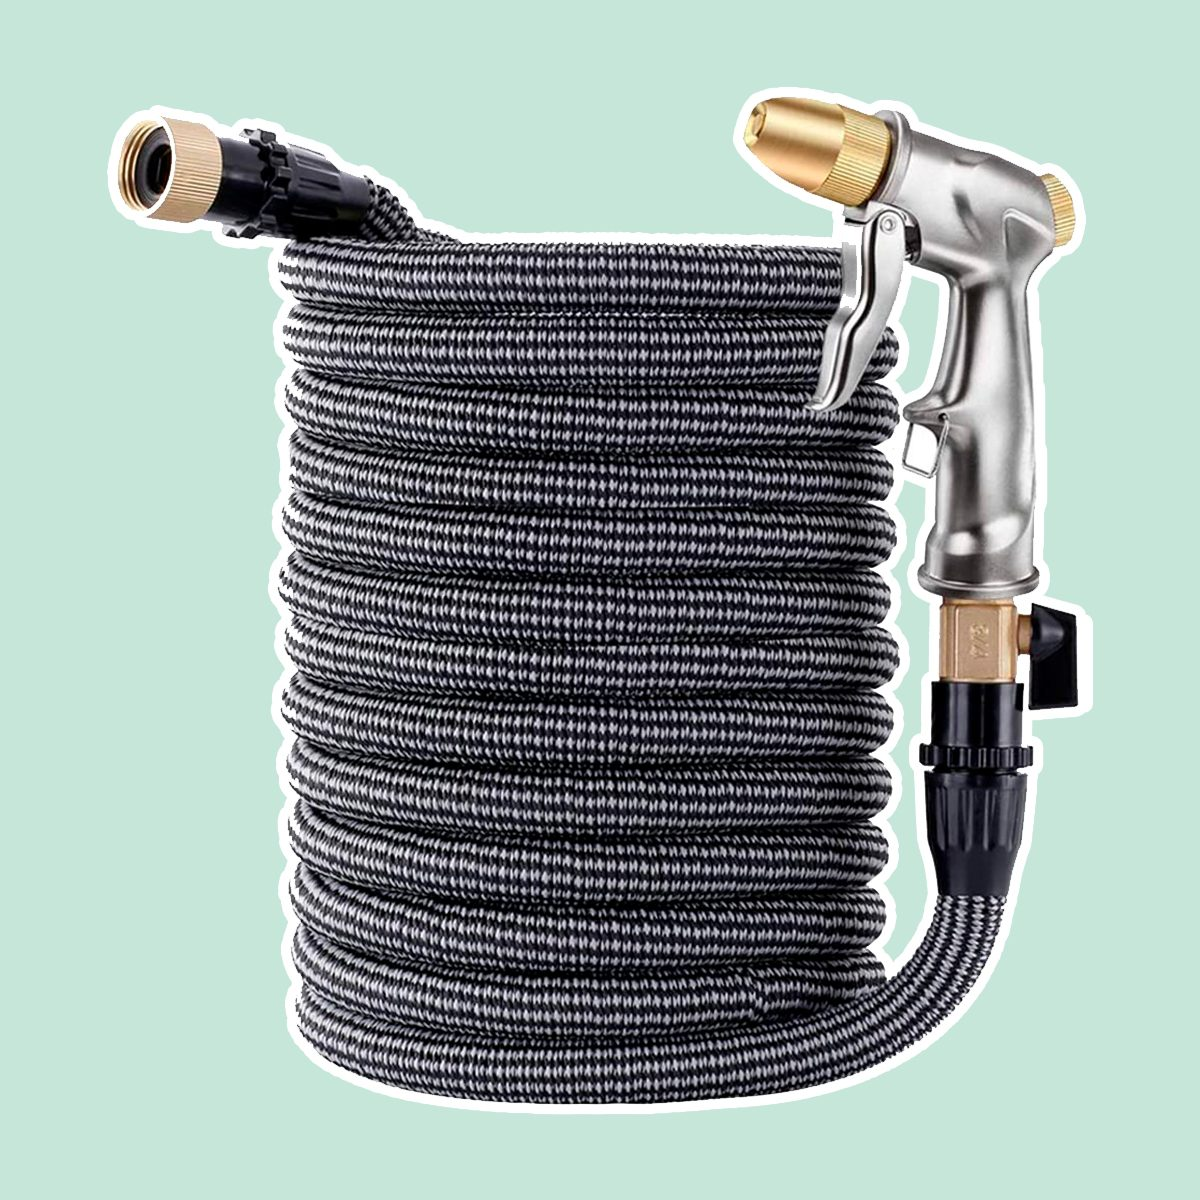 "ESOW Garden Collapsible Hose(50ft)+Heavy Duty Metal Garden Hose Nozzle,Leakproof Lightweight Expandable Garden Water Hose with 3/4"" Solid Brass Fittings,High Pressure Pistol Grip Sprayer for Watering"